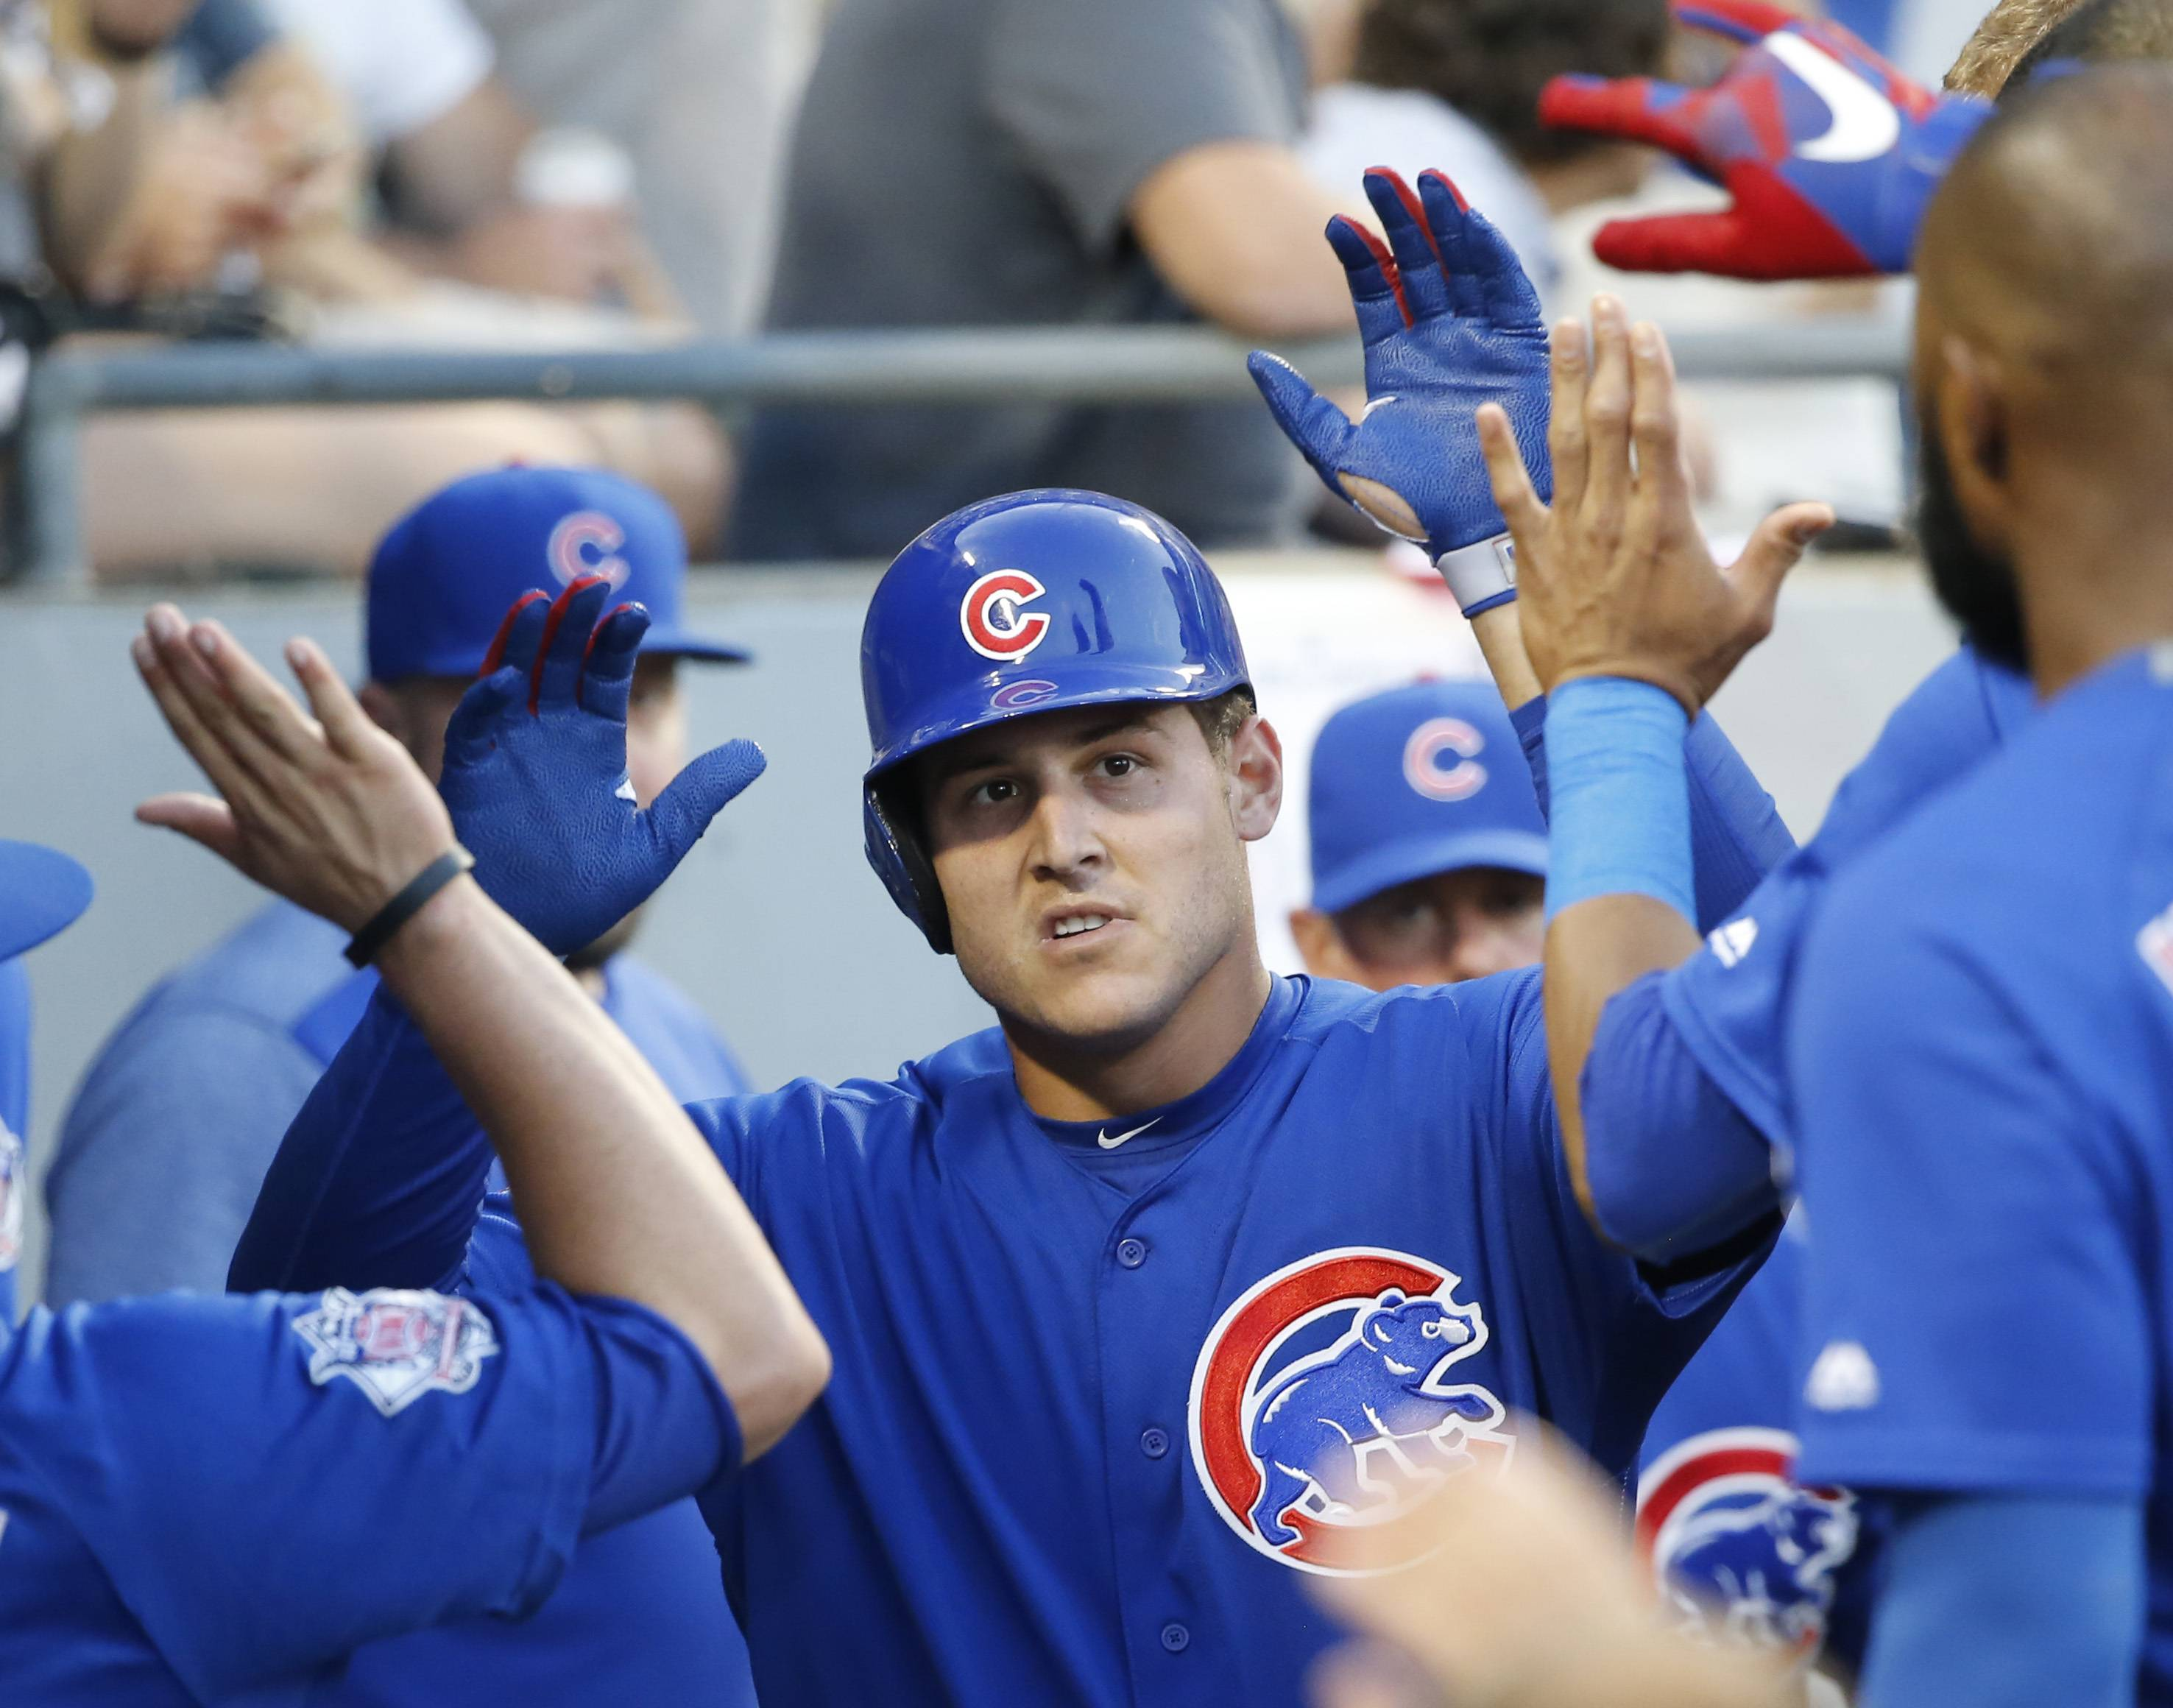 Chicago Cubs' Anthony Rizzo celebrates in the dugout after his home run off Chicago White Sox starting pitcher Mike Pelfrey during the fourth inning of a baseball game Thursday, July 27, 2017, in Chicago. (AP Photo/Charles Rex Arbogast)